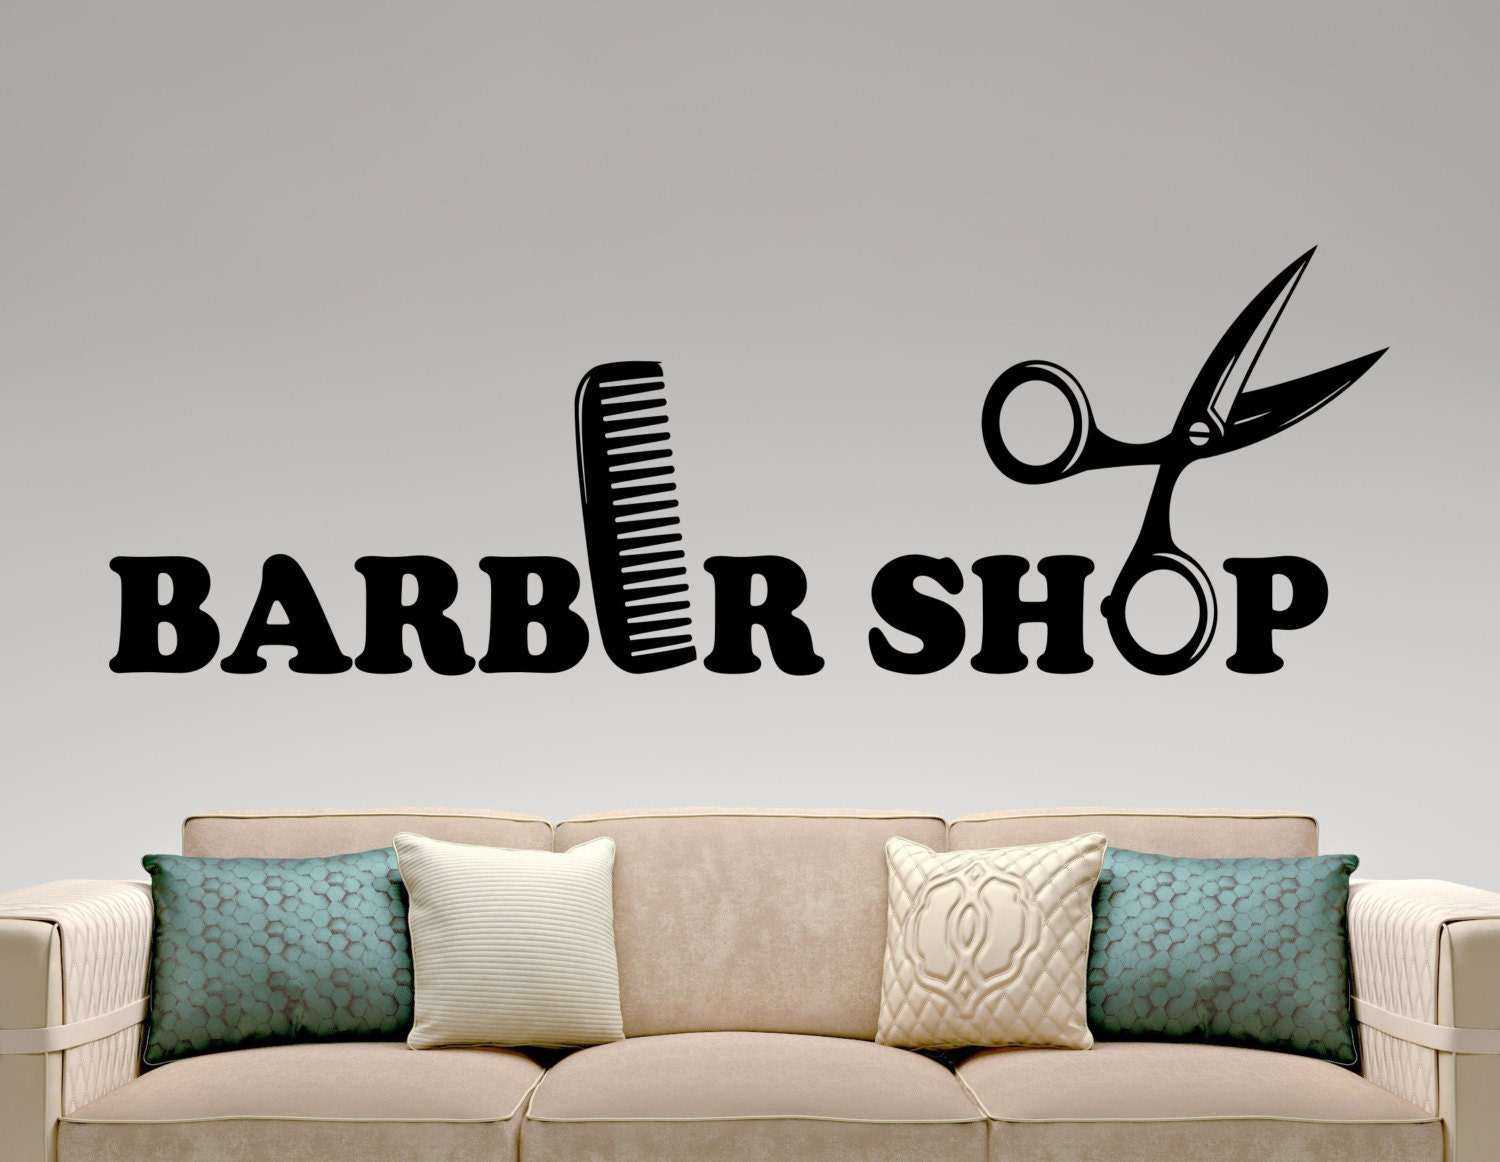 Barber Shop Wall Decal Hairdressing Salon Vinyl Sticker - Custom vinyl wall decals for hair salonvinyl wall decal hair salon stylist hairdresser barber shop